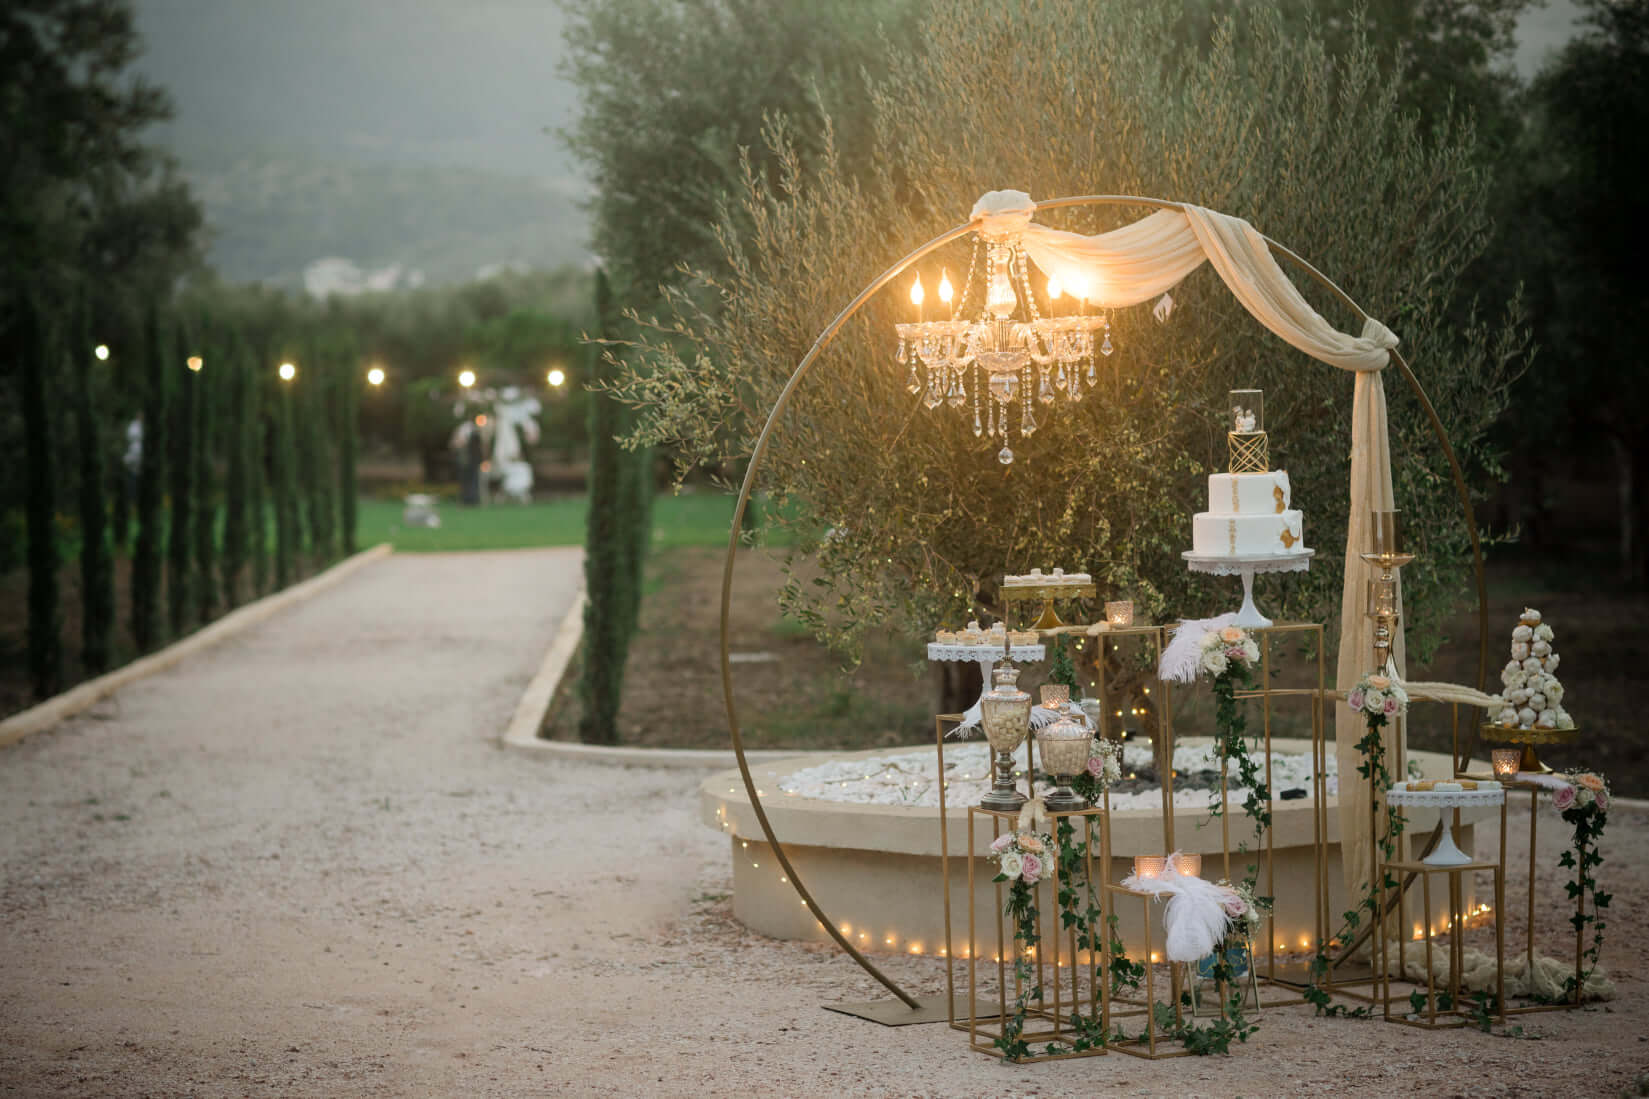 Olive Grove Wedding Venue - Crete - The Bridal consultant